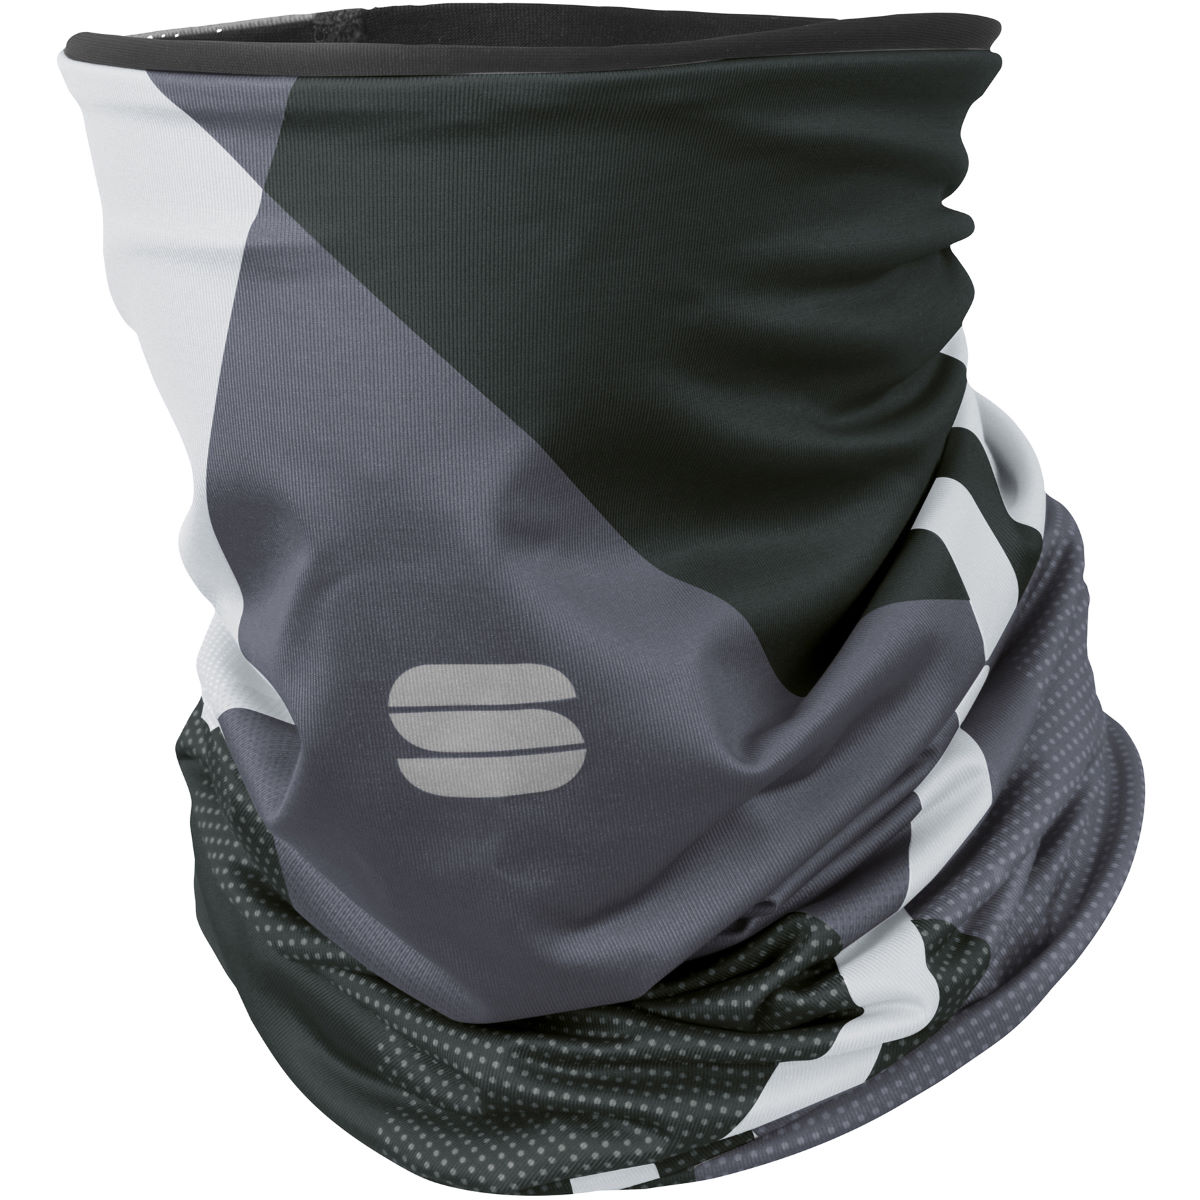 Sportful Women's Neck Warmer - Bragas de cuello